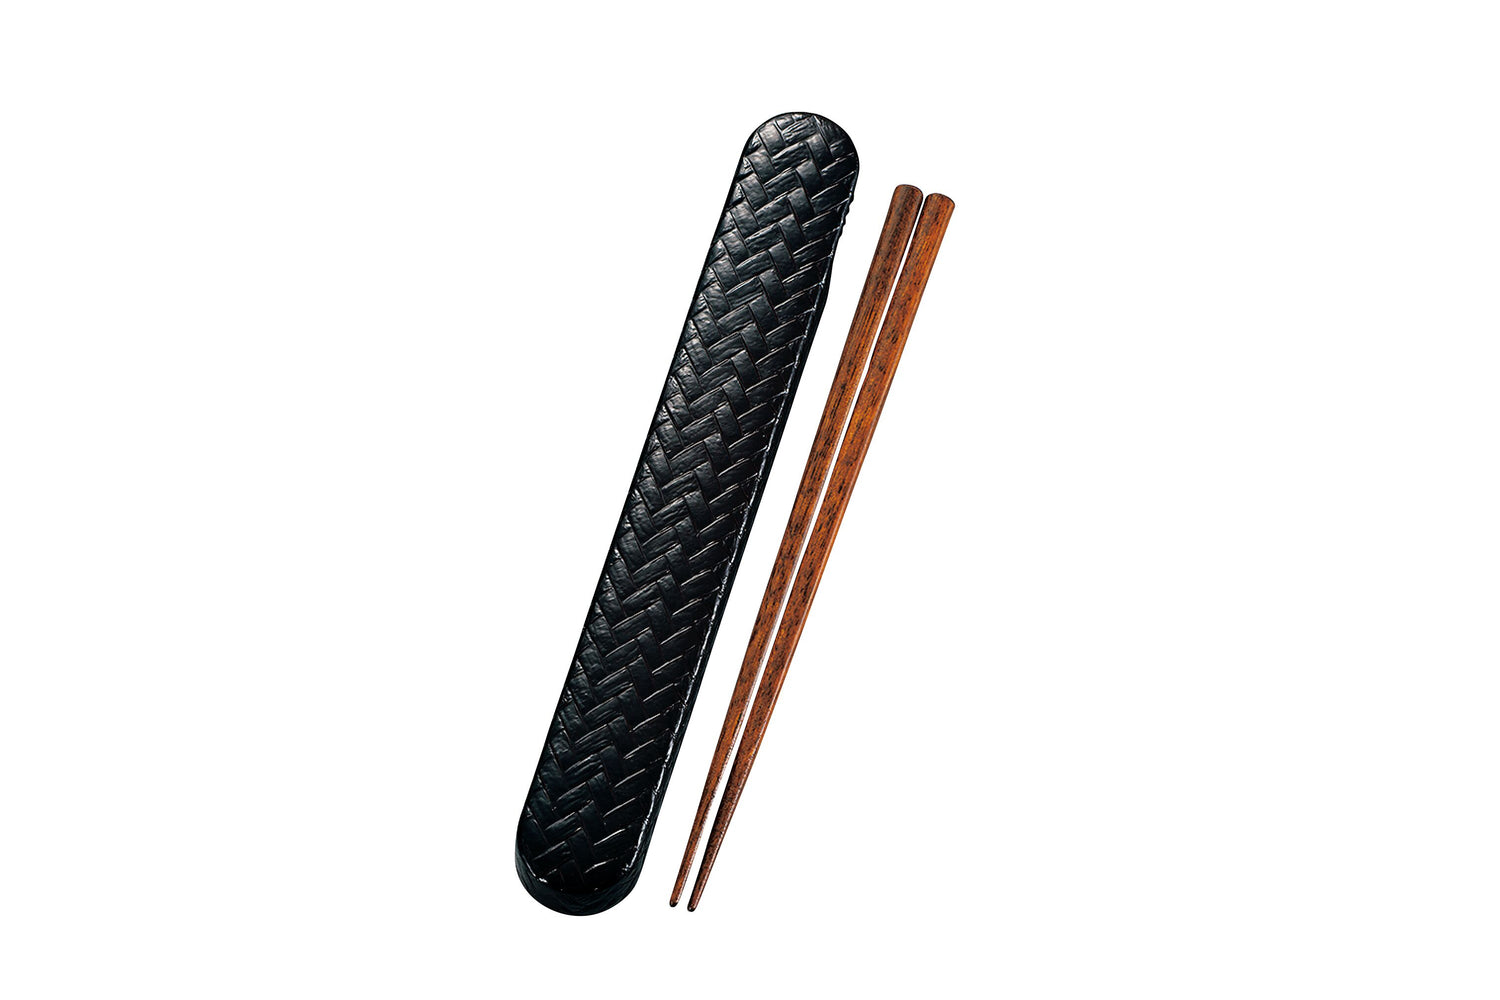 Ajiro Chopsticks Set | Black by Hakoya - Bento&co Japanese Bento Lunch Boxes and Kitchenware Specialists